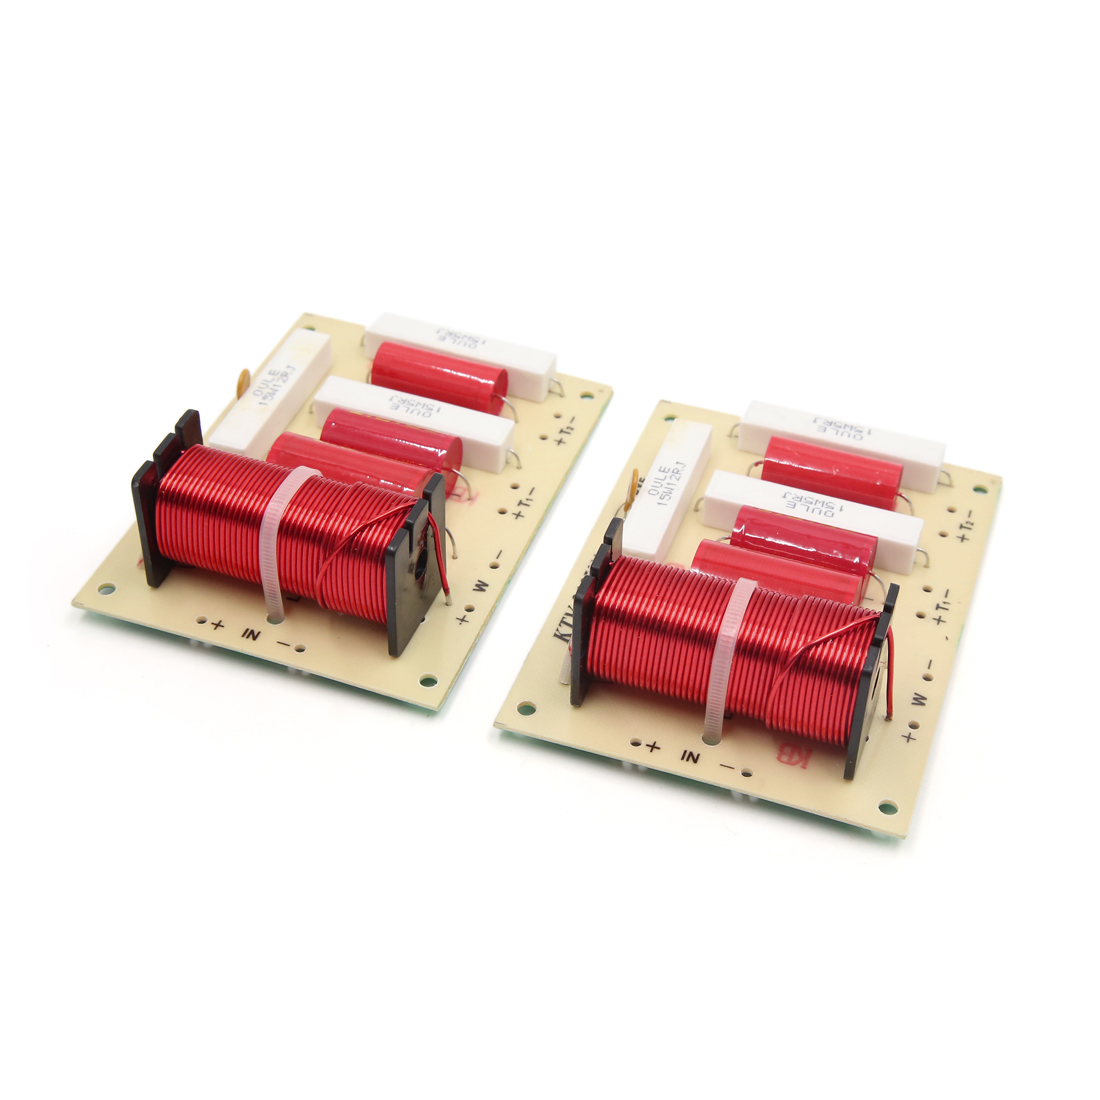 2Pcs Speaker Audio Frequency Divider 2 Way Crossover Filters 250W